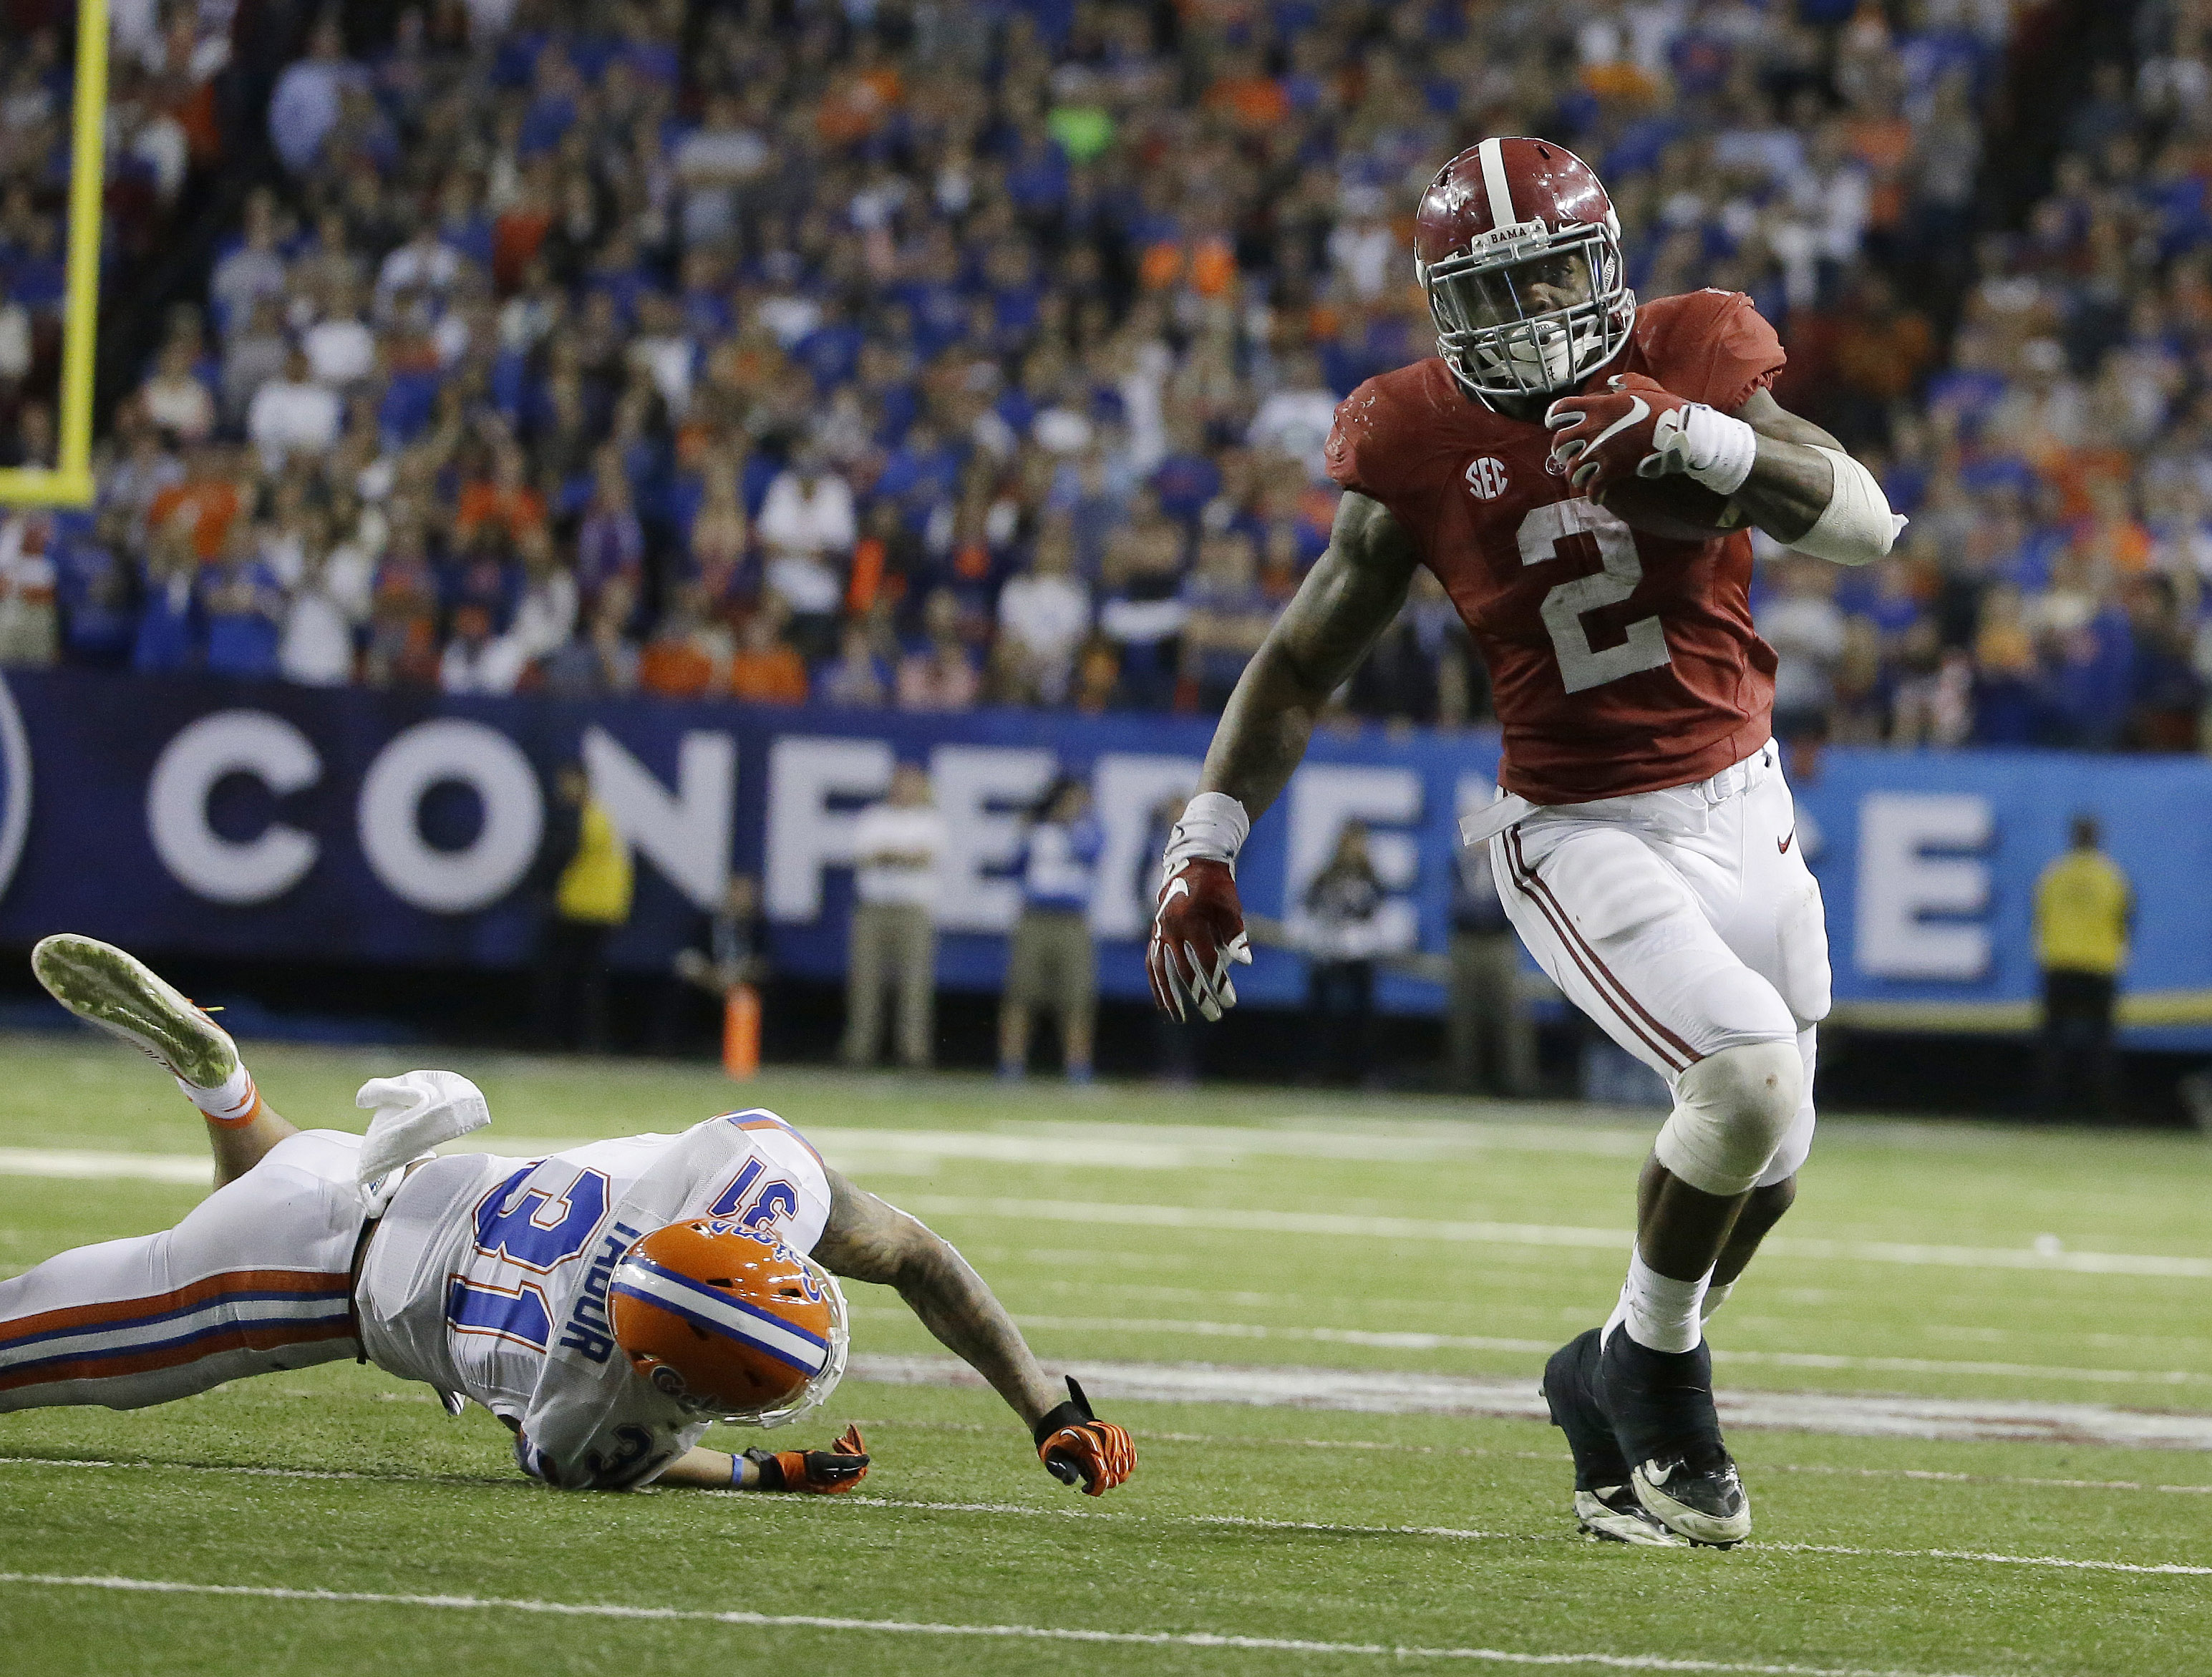 FILE - In this Dec. 15, 2015, file photo, Alabama running back Derrick Henry (2) runs by Florida defensive back Jalen Tabor (31) during the second half of the Southeastern Conference championship NCAA college football game, in Atlanta.  College football w